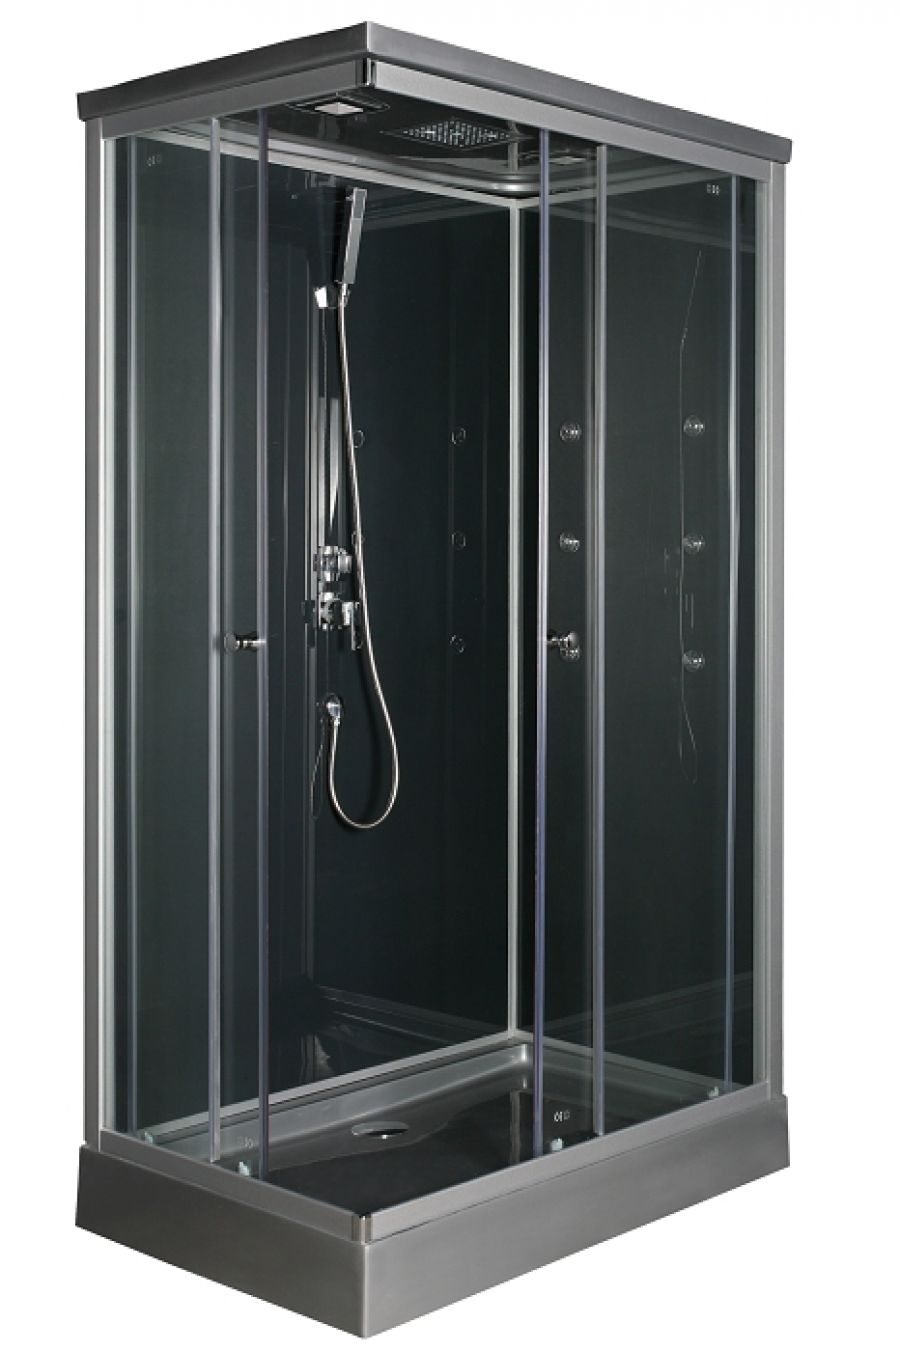 cabine de douche rectangulaire 120x80cm. Black Bedroom Furniture Sets. Home Design Ideas